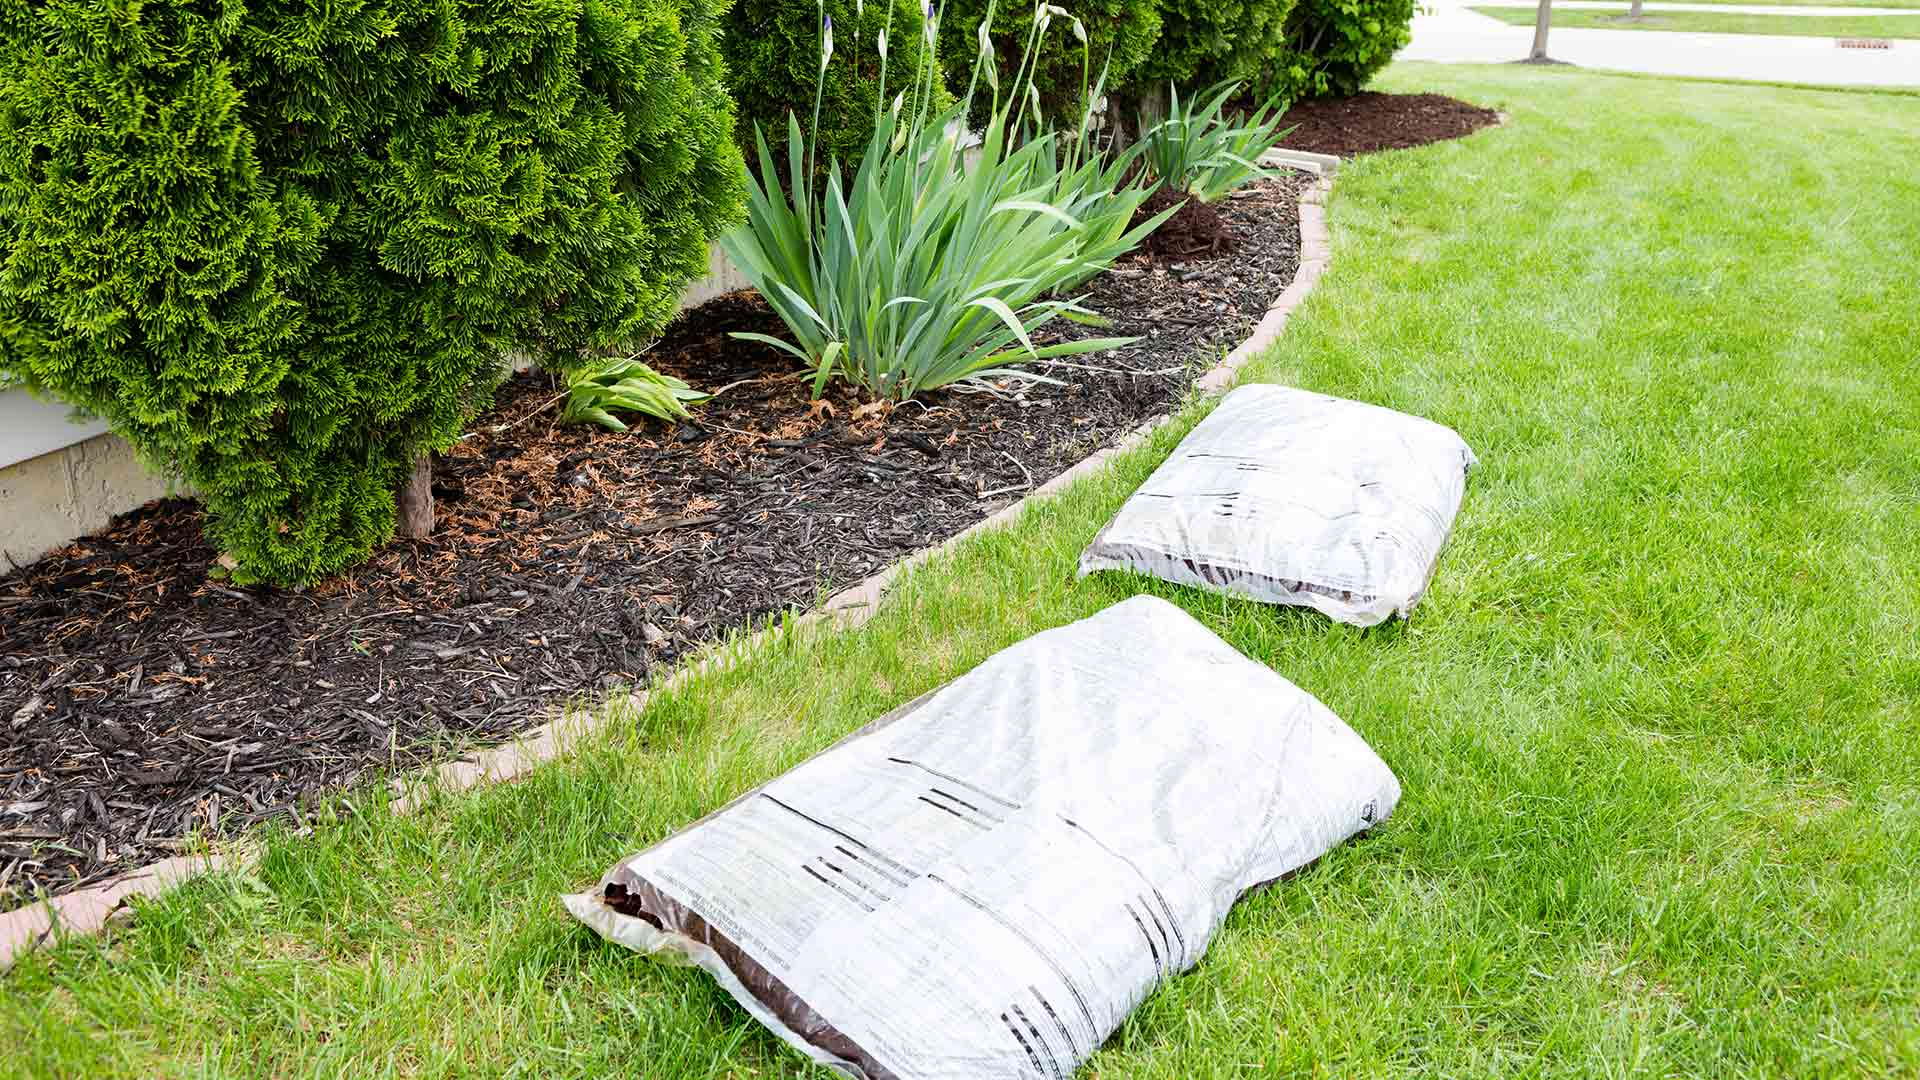 Two mulch bags that will be opened to replenish the landscape bed of a homeowner.